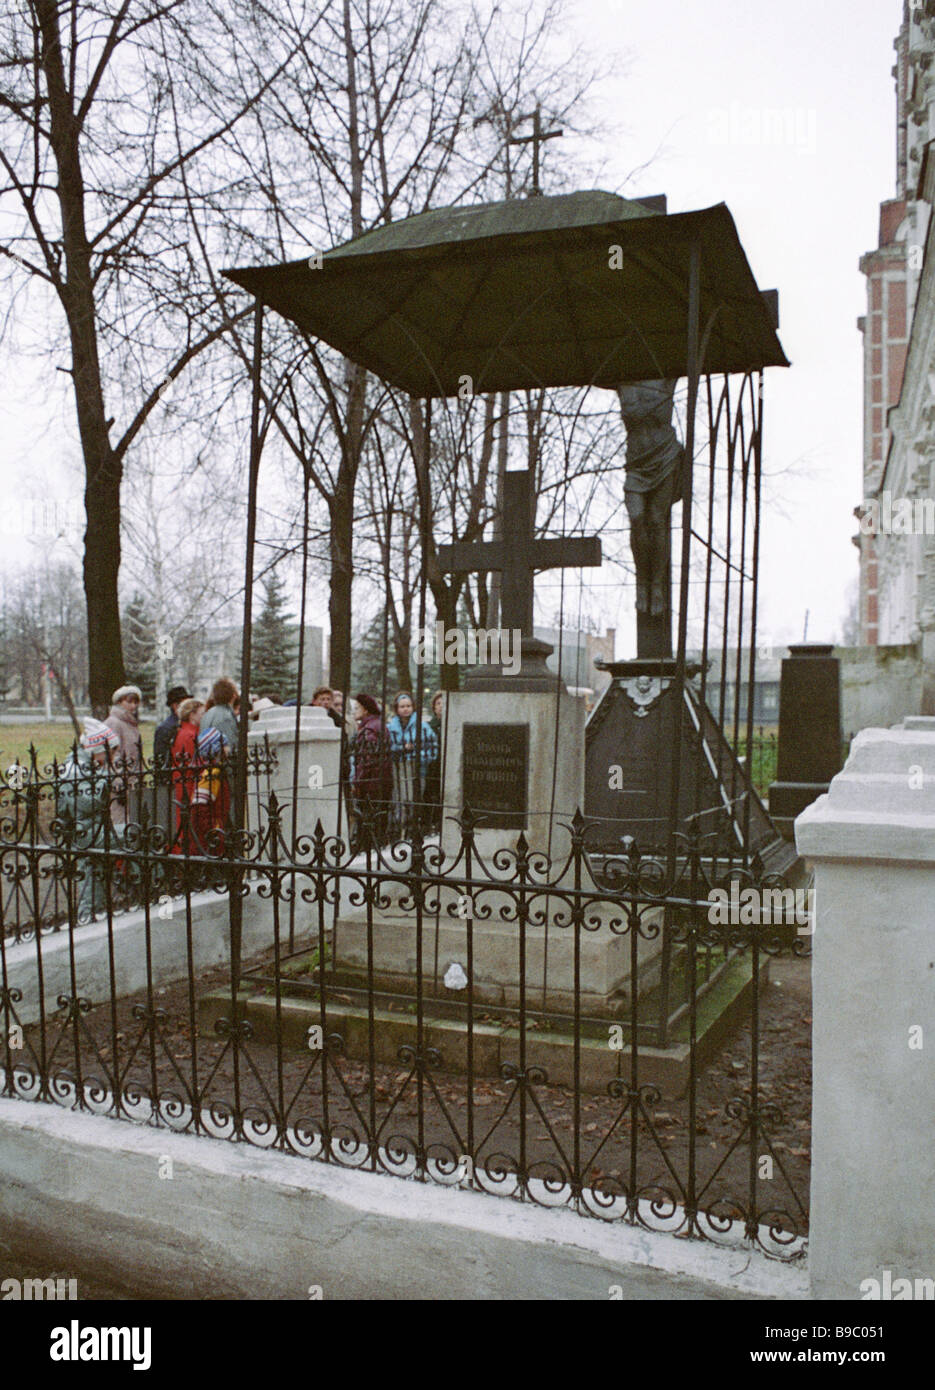 The grave of Decembrist Ivan Pushchin 1798 1859 at Bronnitsy in Moscow region - Stock Image